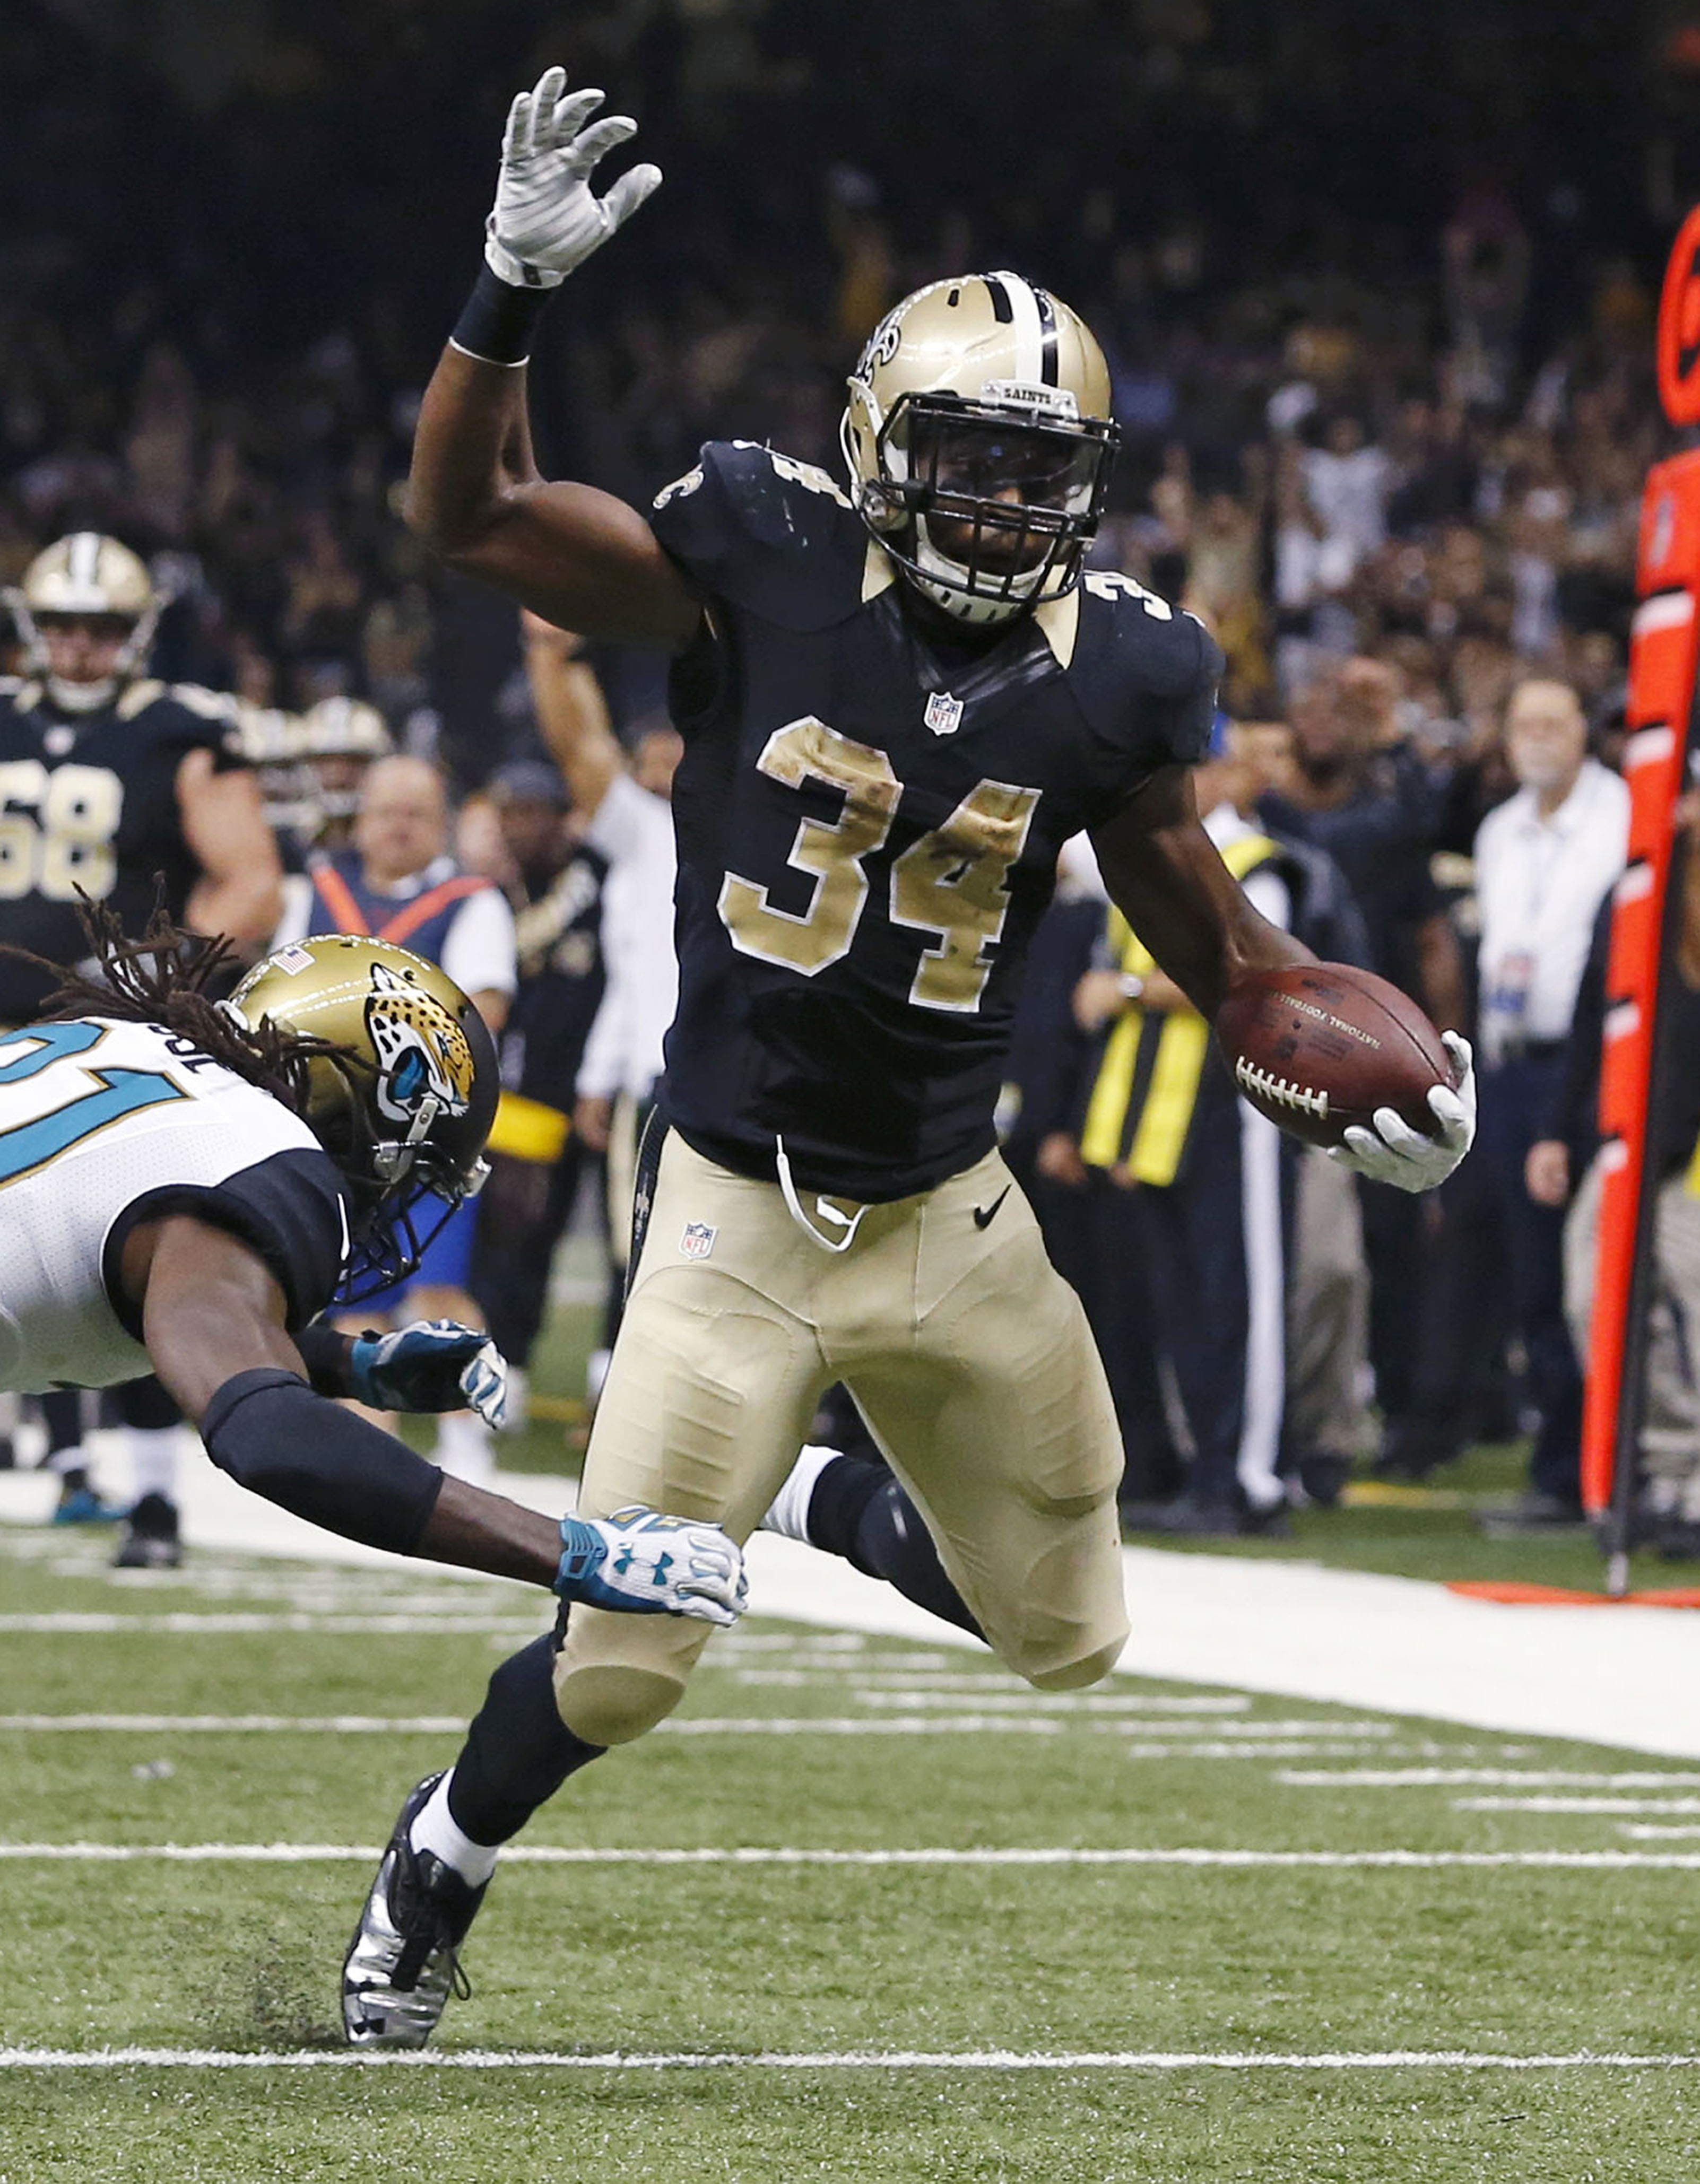 New Orleans Saints running back Tim Hightower (34) carries for a first and goal against Jacksonville Jaguars cornerback Davon House (31) in the first half of an NFL football game in New Orleans, Sunday, Dec. 27, 2015. (AP Photo/Jonathan Bachman)